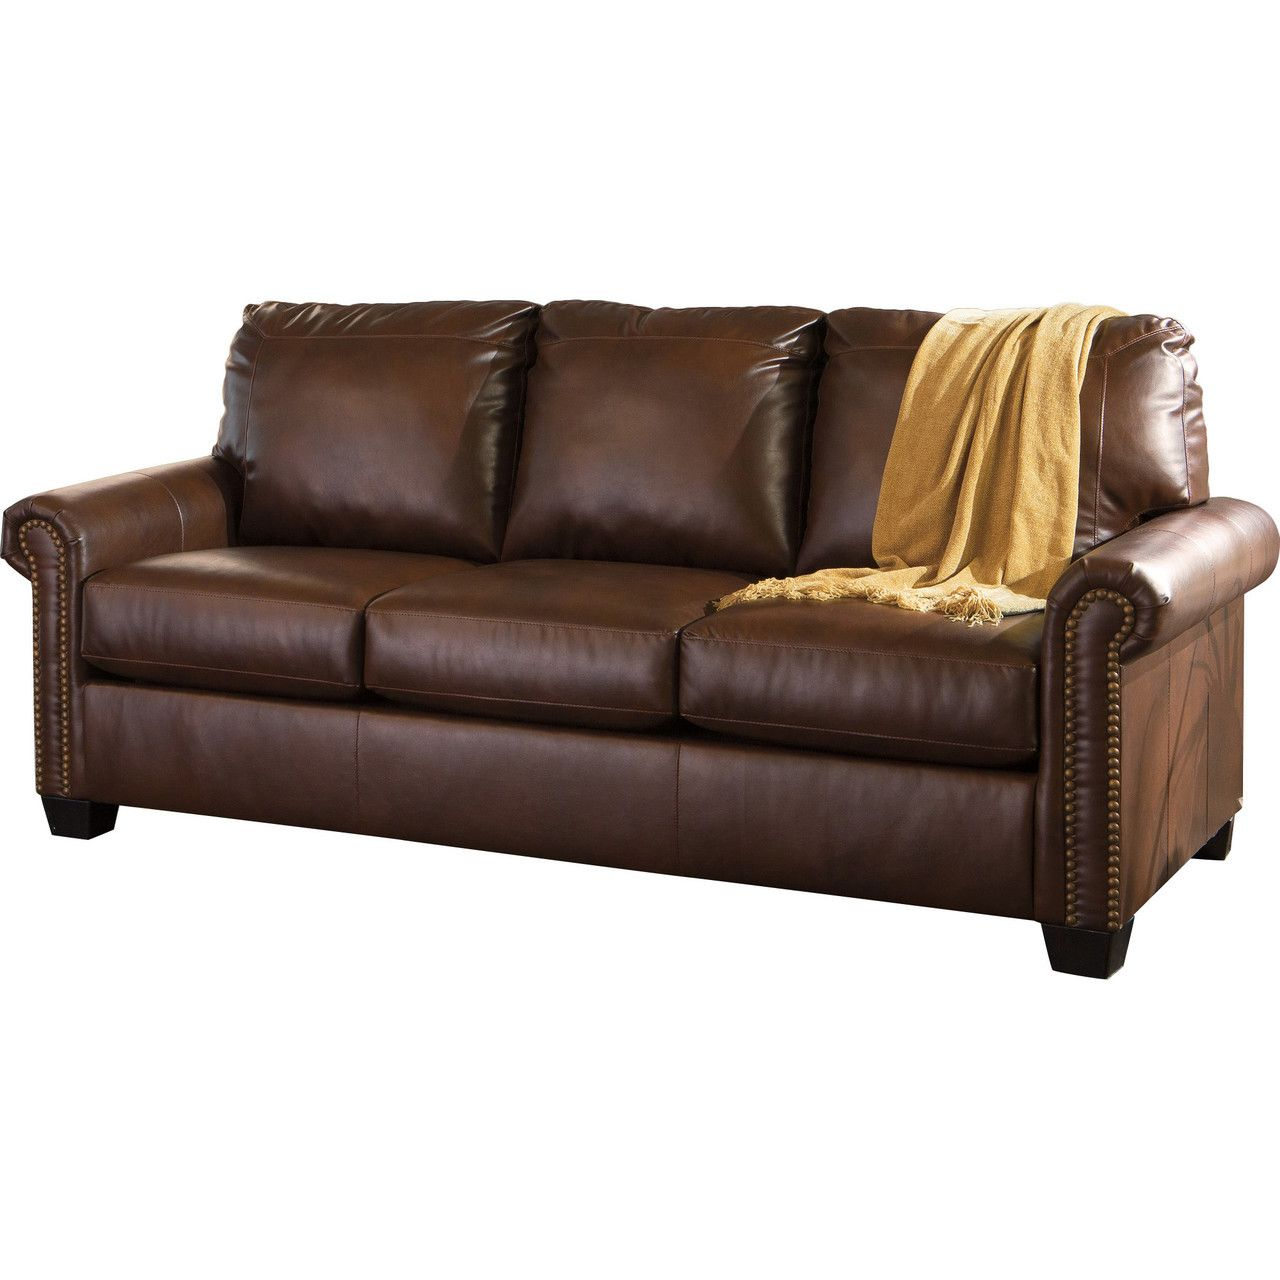 BROWN LEATHER QUEEN SIZE SLEEPER SOFA WITH MATTRESS Just $639.00  Streamlined Comfort And A Coolly Concealed